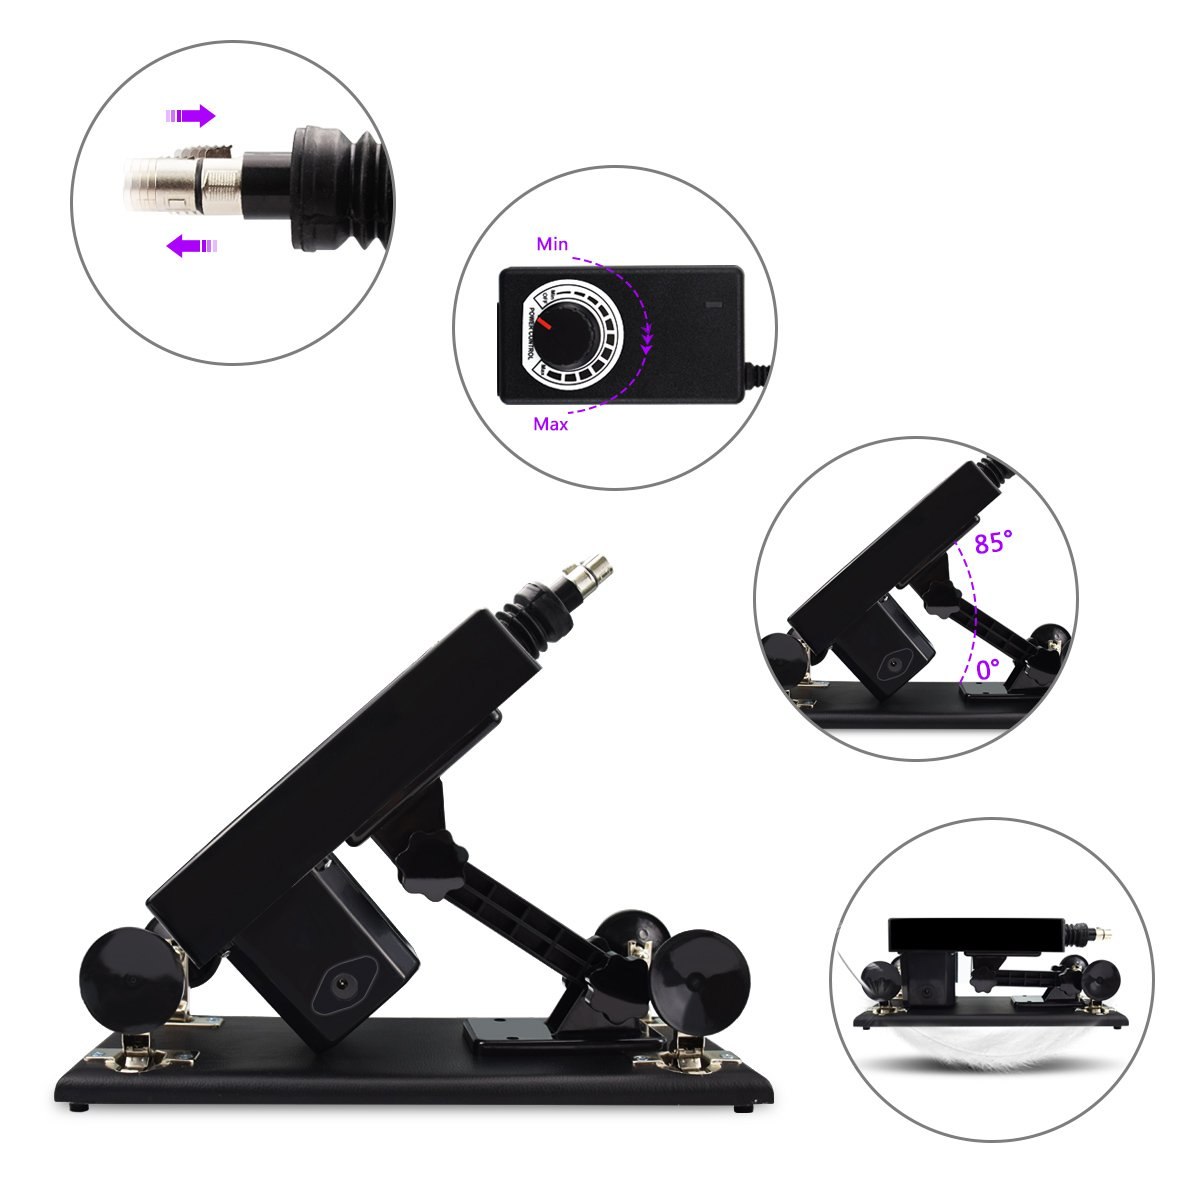 Female Sex Machine Toys Products Electric Automatic Attachments Men and Women Masturbation Sex Machine by iKenmu (Image #4)